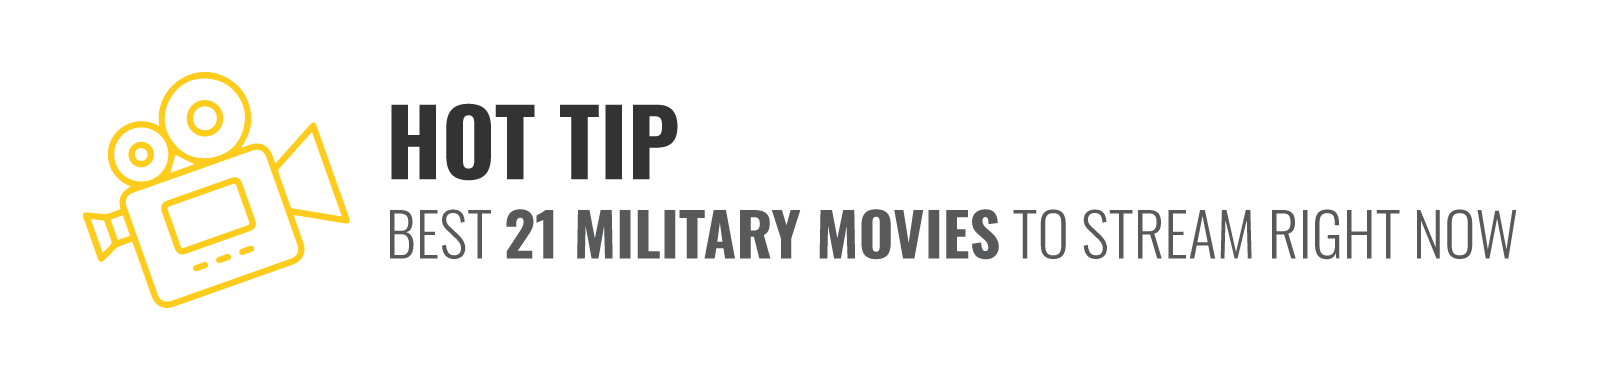 Hot Tip - We also have the list of the best 21 Military movies to stream right now in our trending blog here.